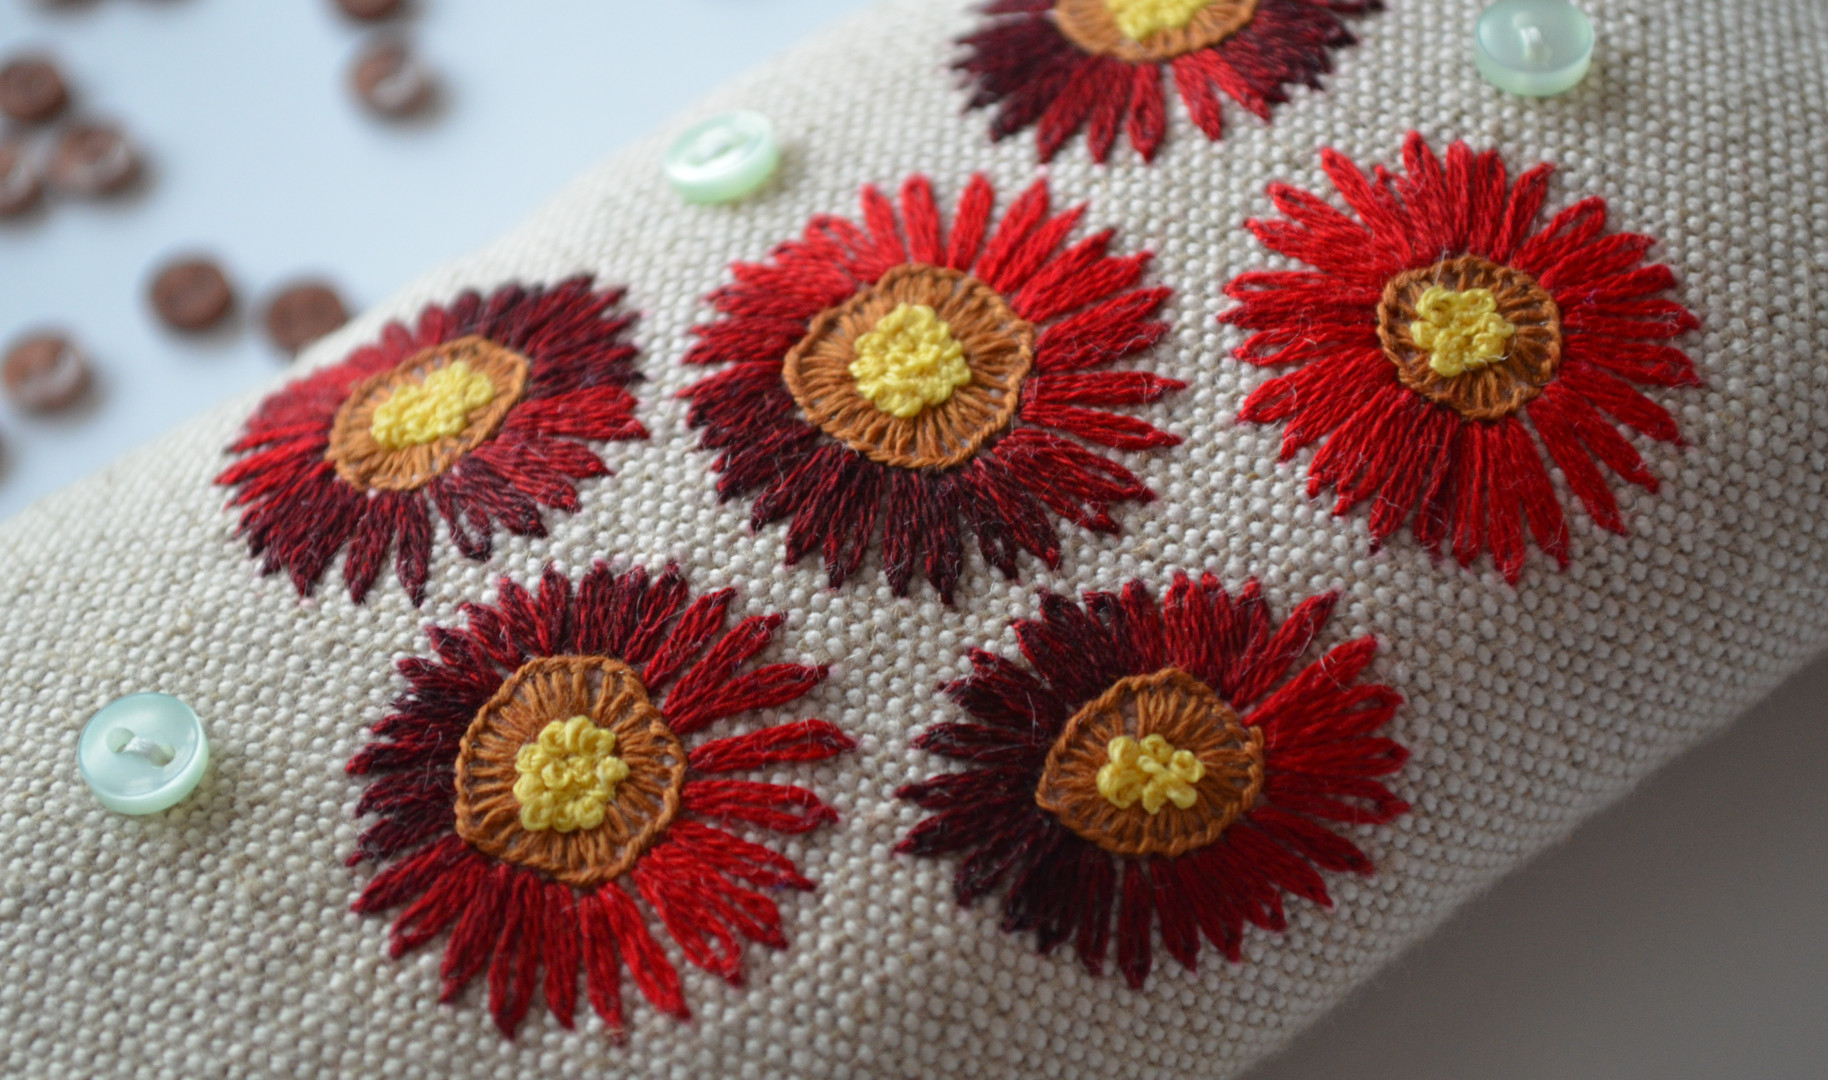 Copy of Embroidered daisies from keepsti